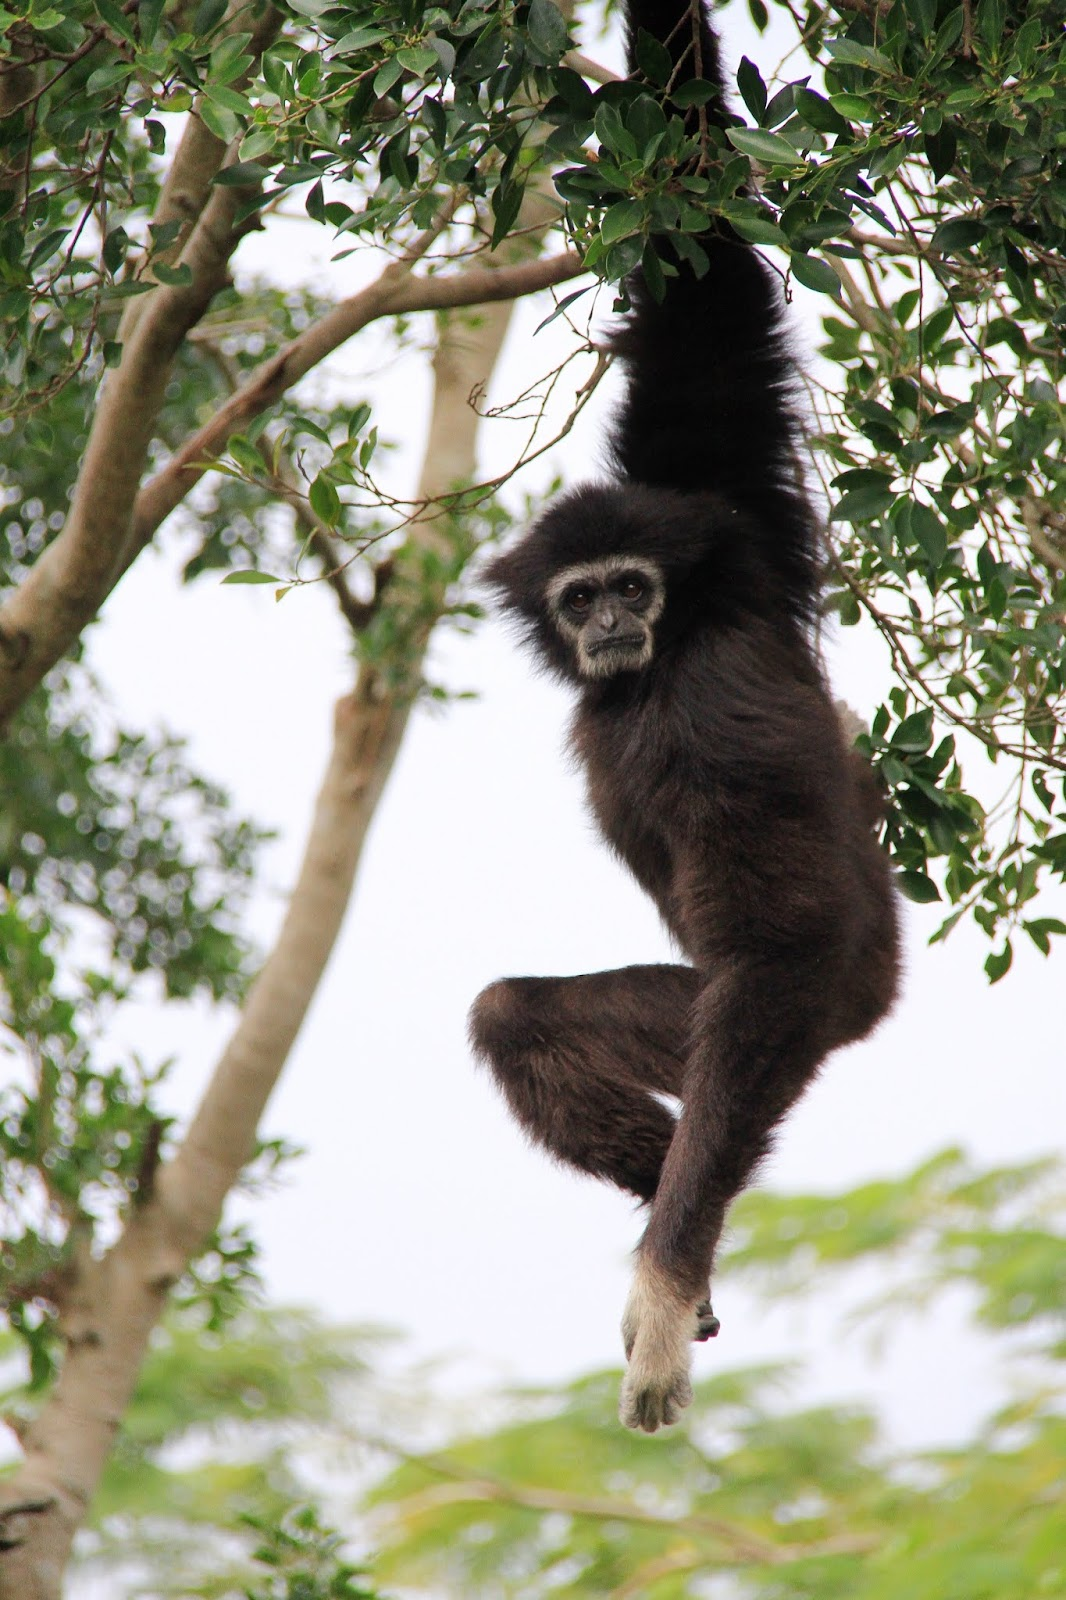 Picture of gibbon monkey hanging from a tree.